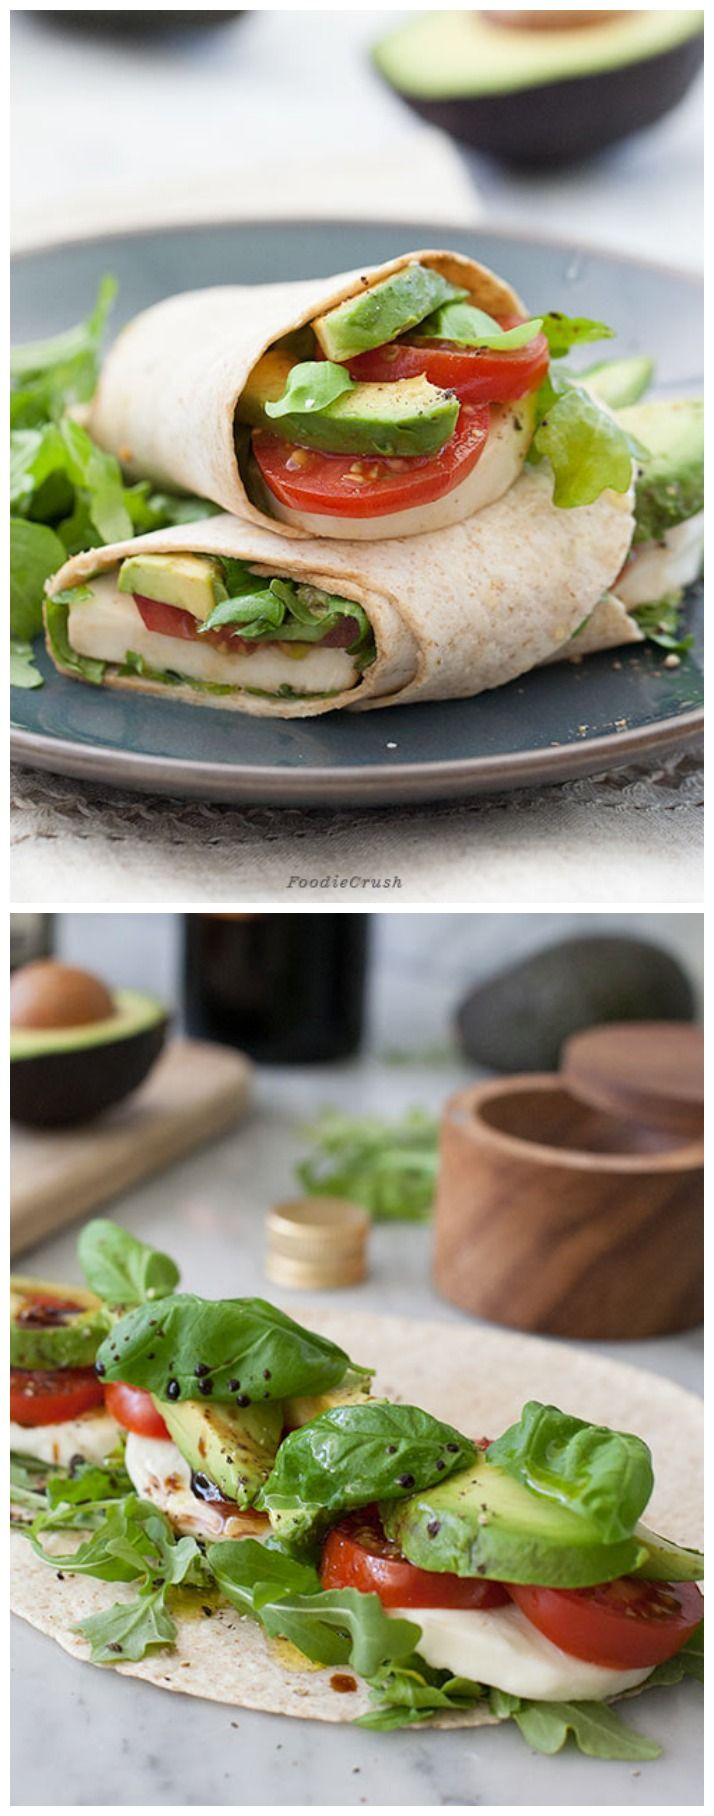 Mozzarella, Tomato and Avocado Caprese Wrap #recipe on foodiecrush.com